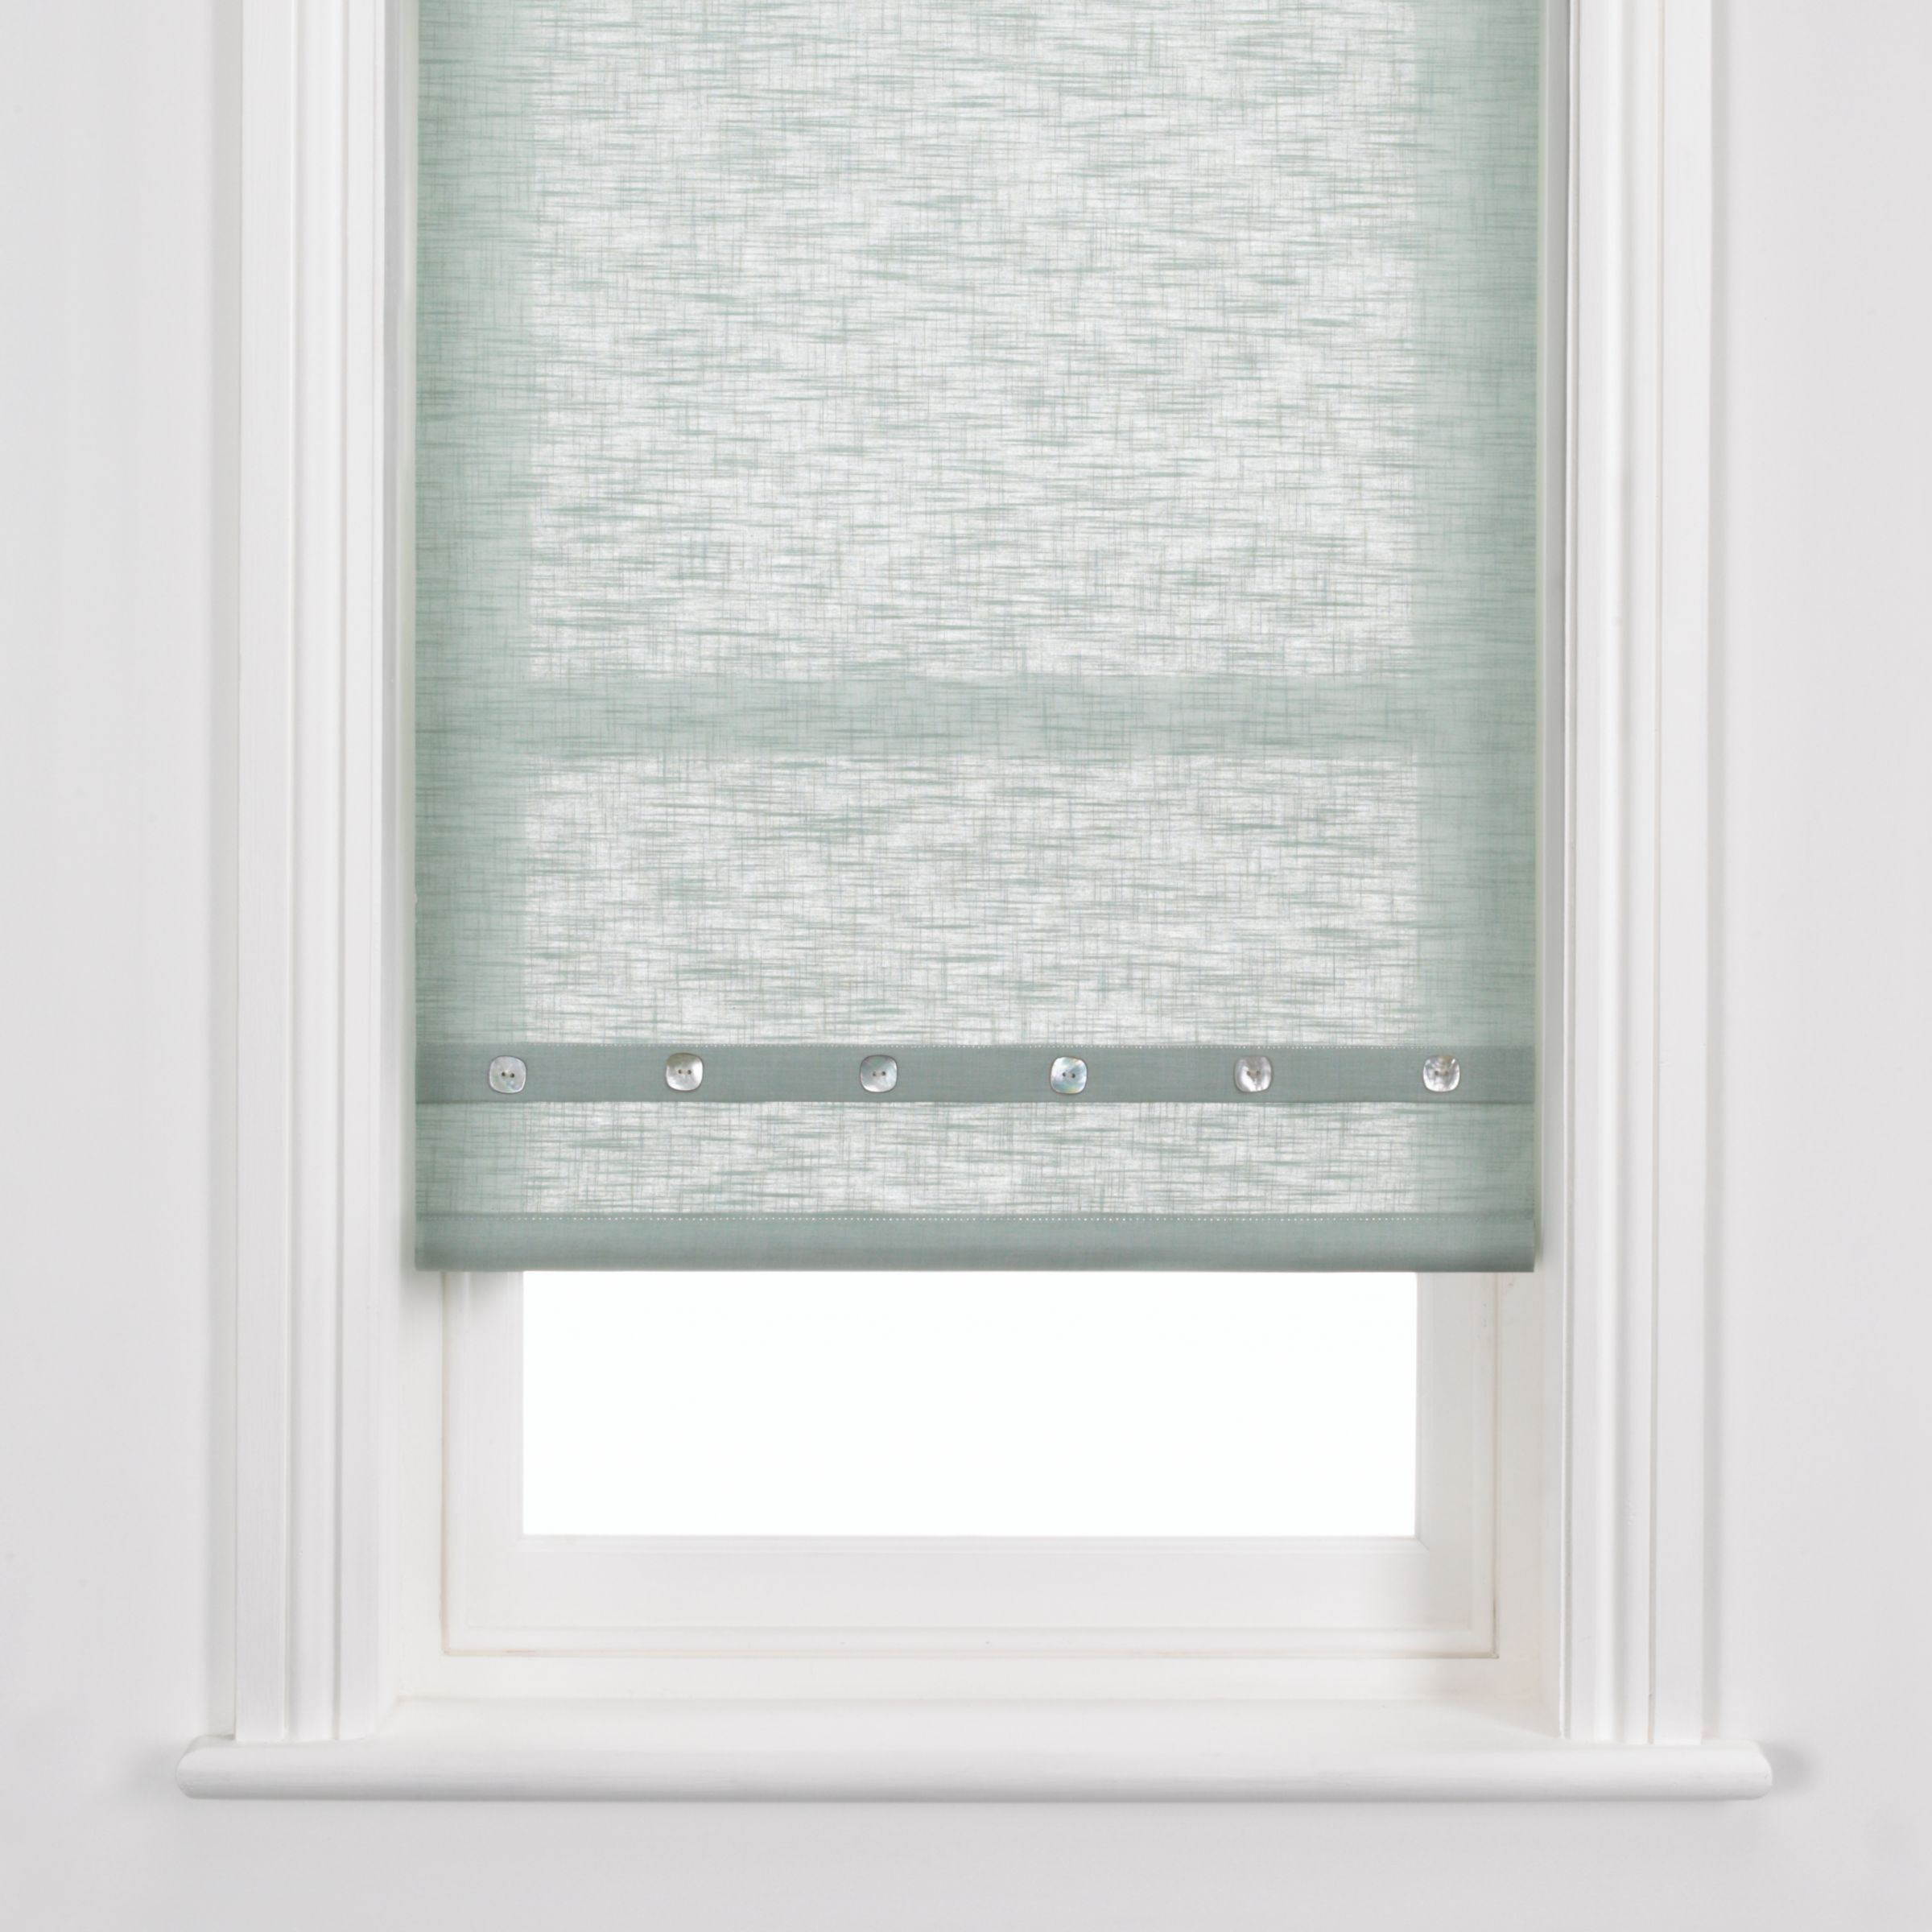 Brompton Roller Blinds, Mineral